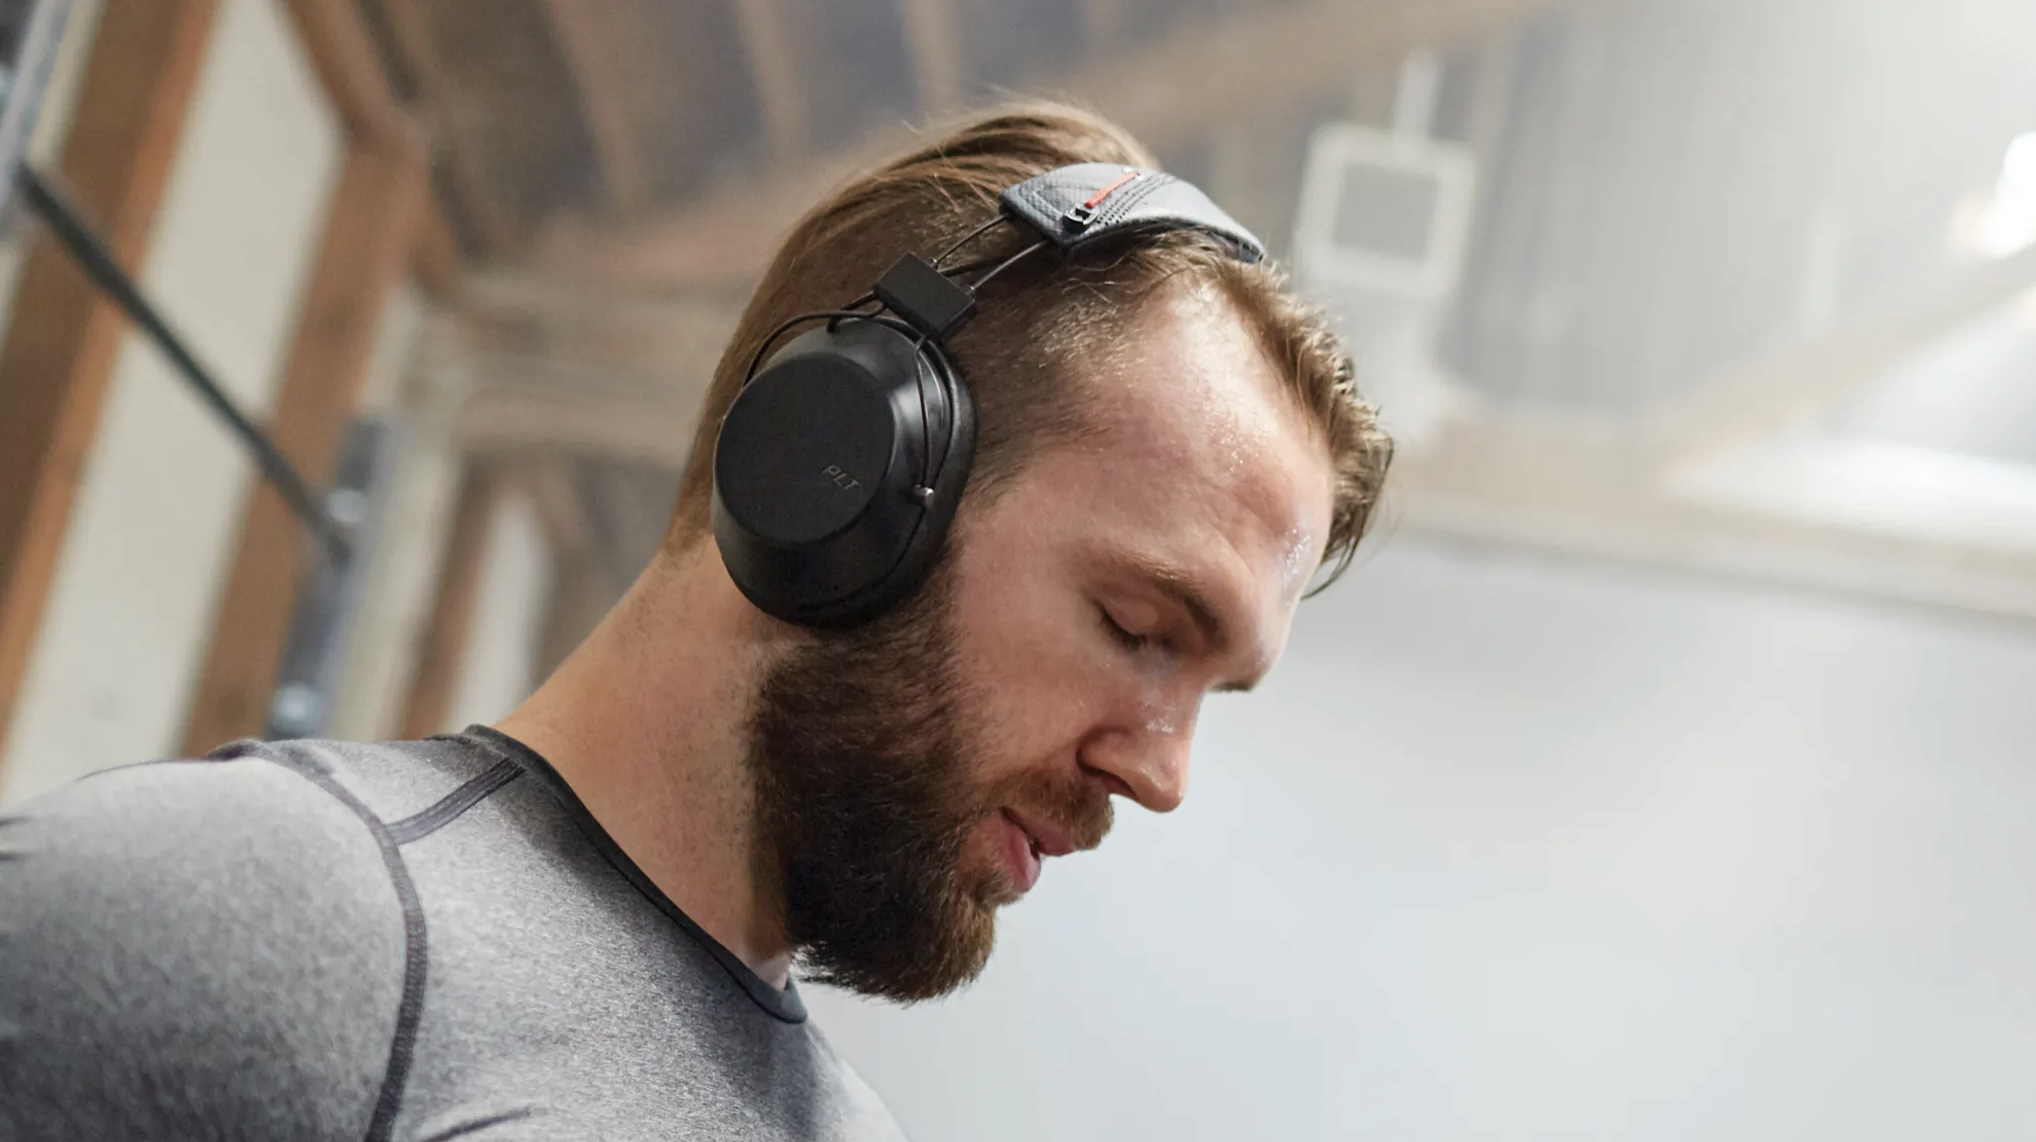 Backbeat Fit 6100 – Over Ear headphones for the gym or office